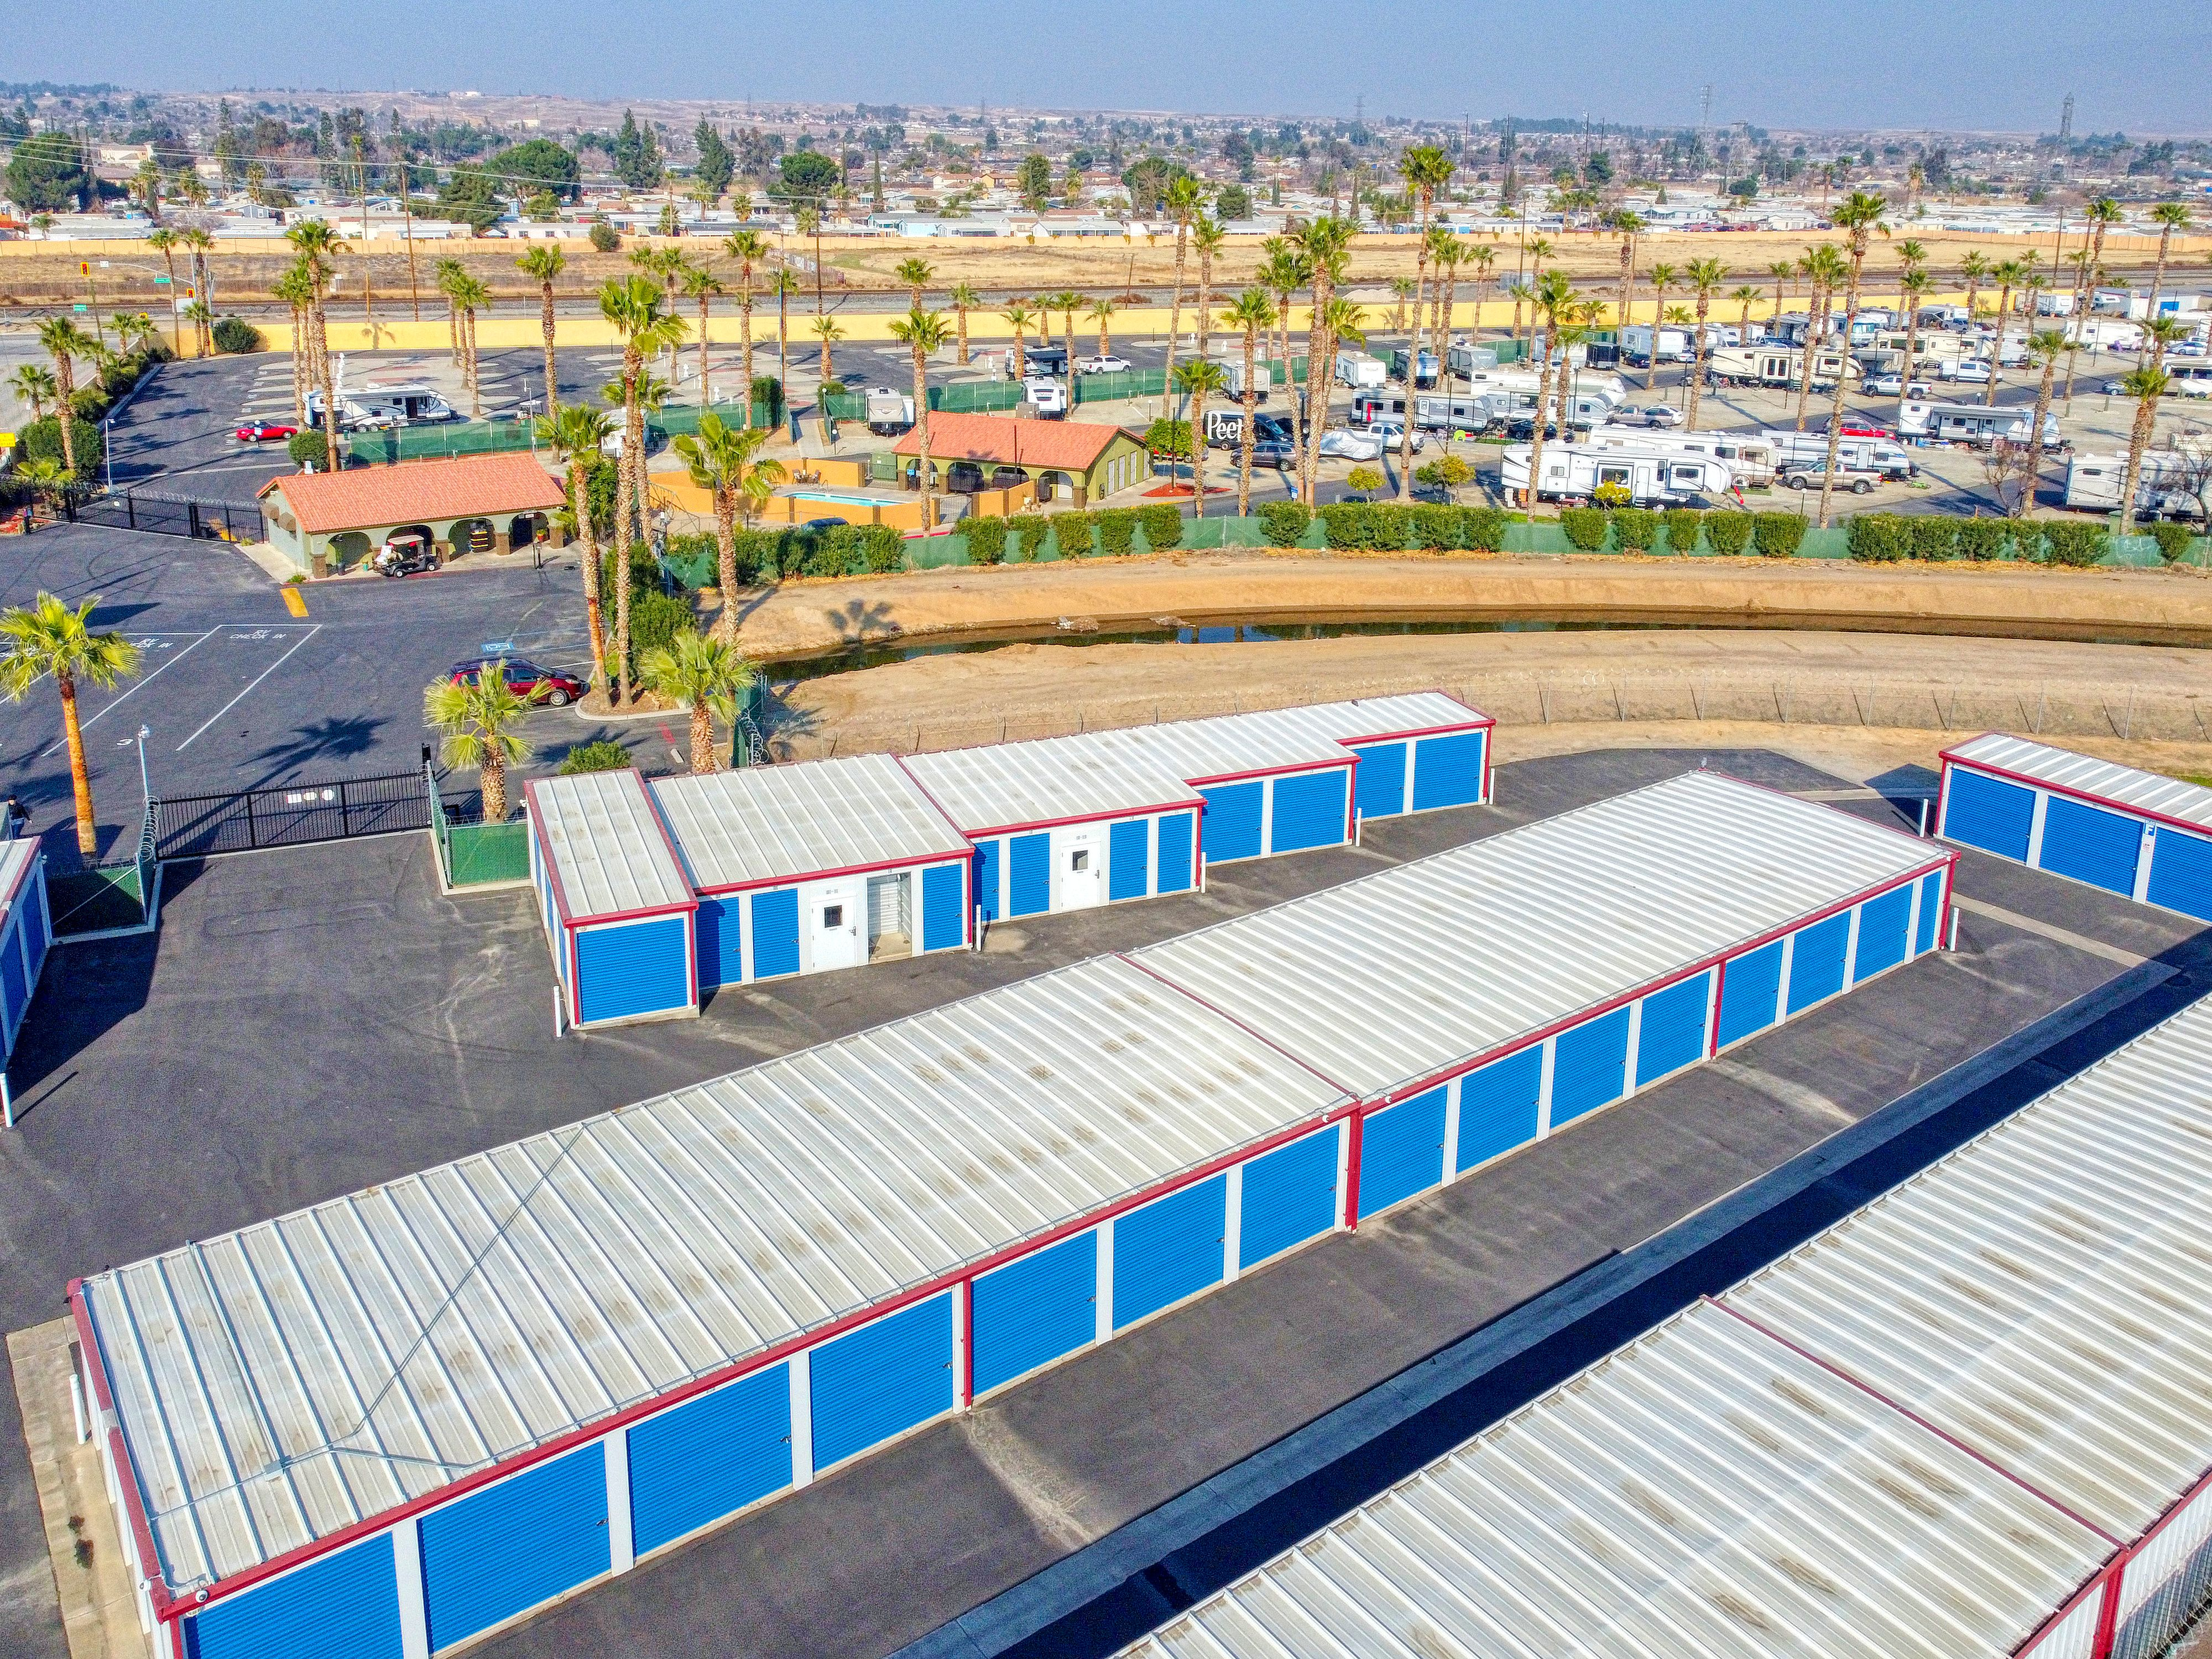 rv and boat parking, bakersfield, ca